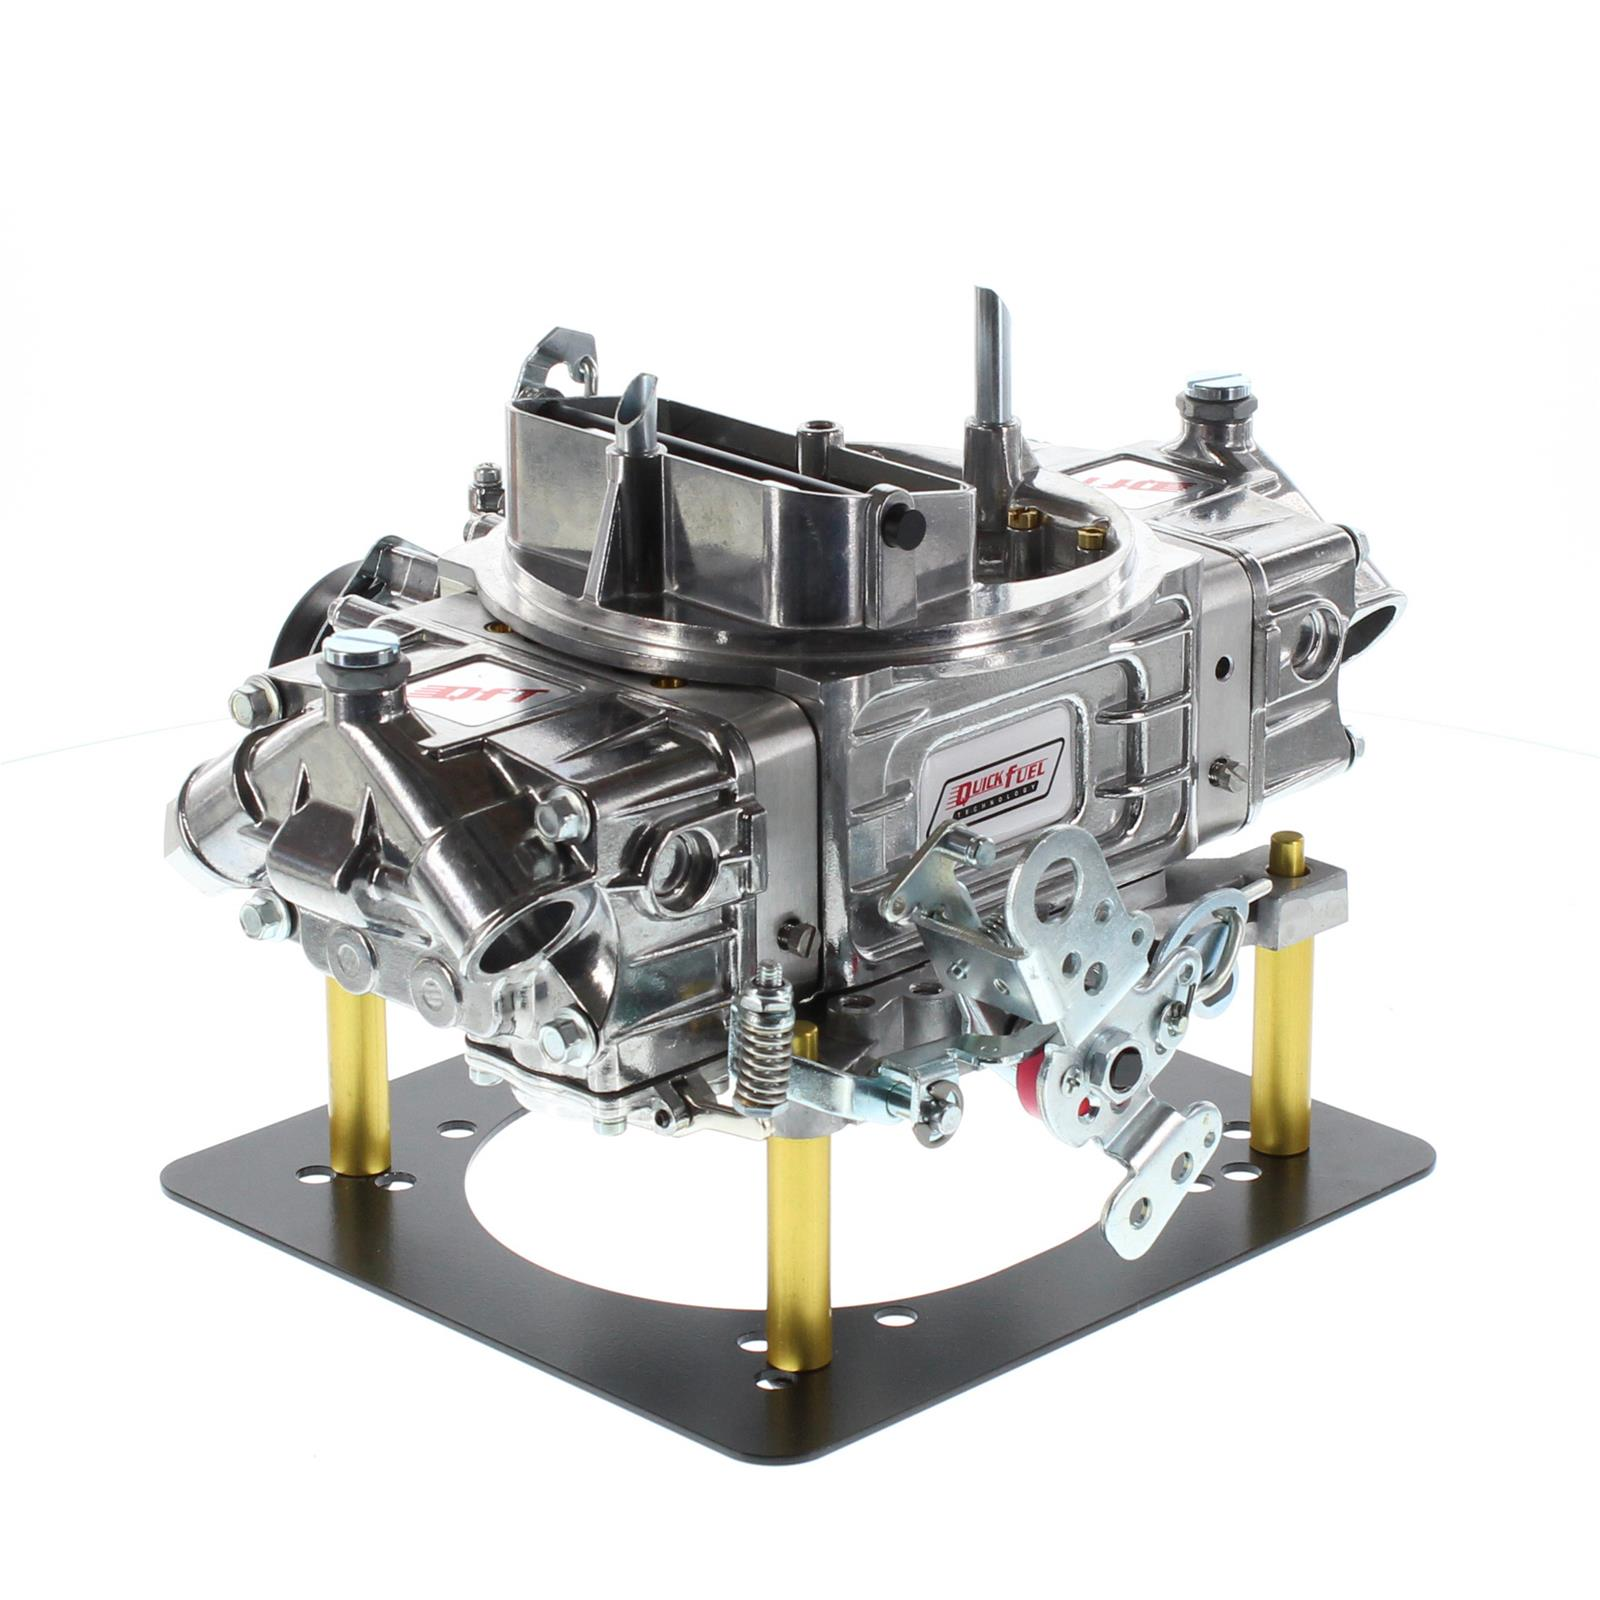 qft hr 680 vs_xl quick fuel hr series carburetors hr 680 vs free shipping on  at edmiracle.co